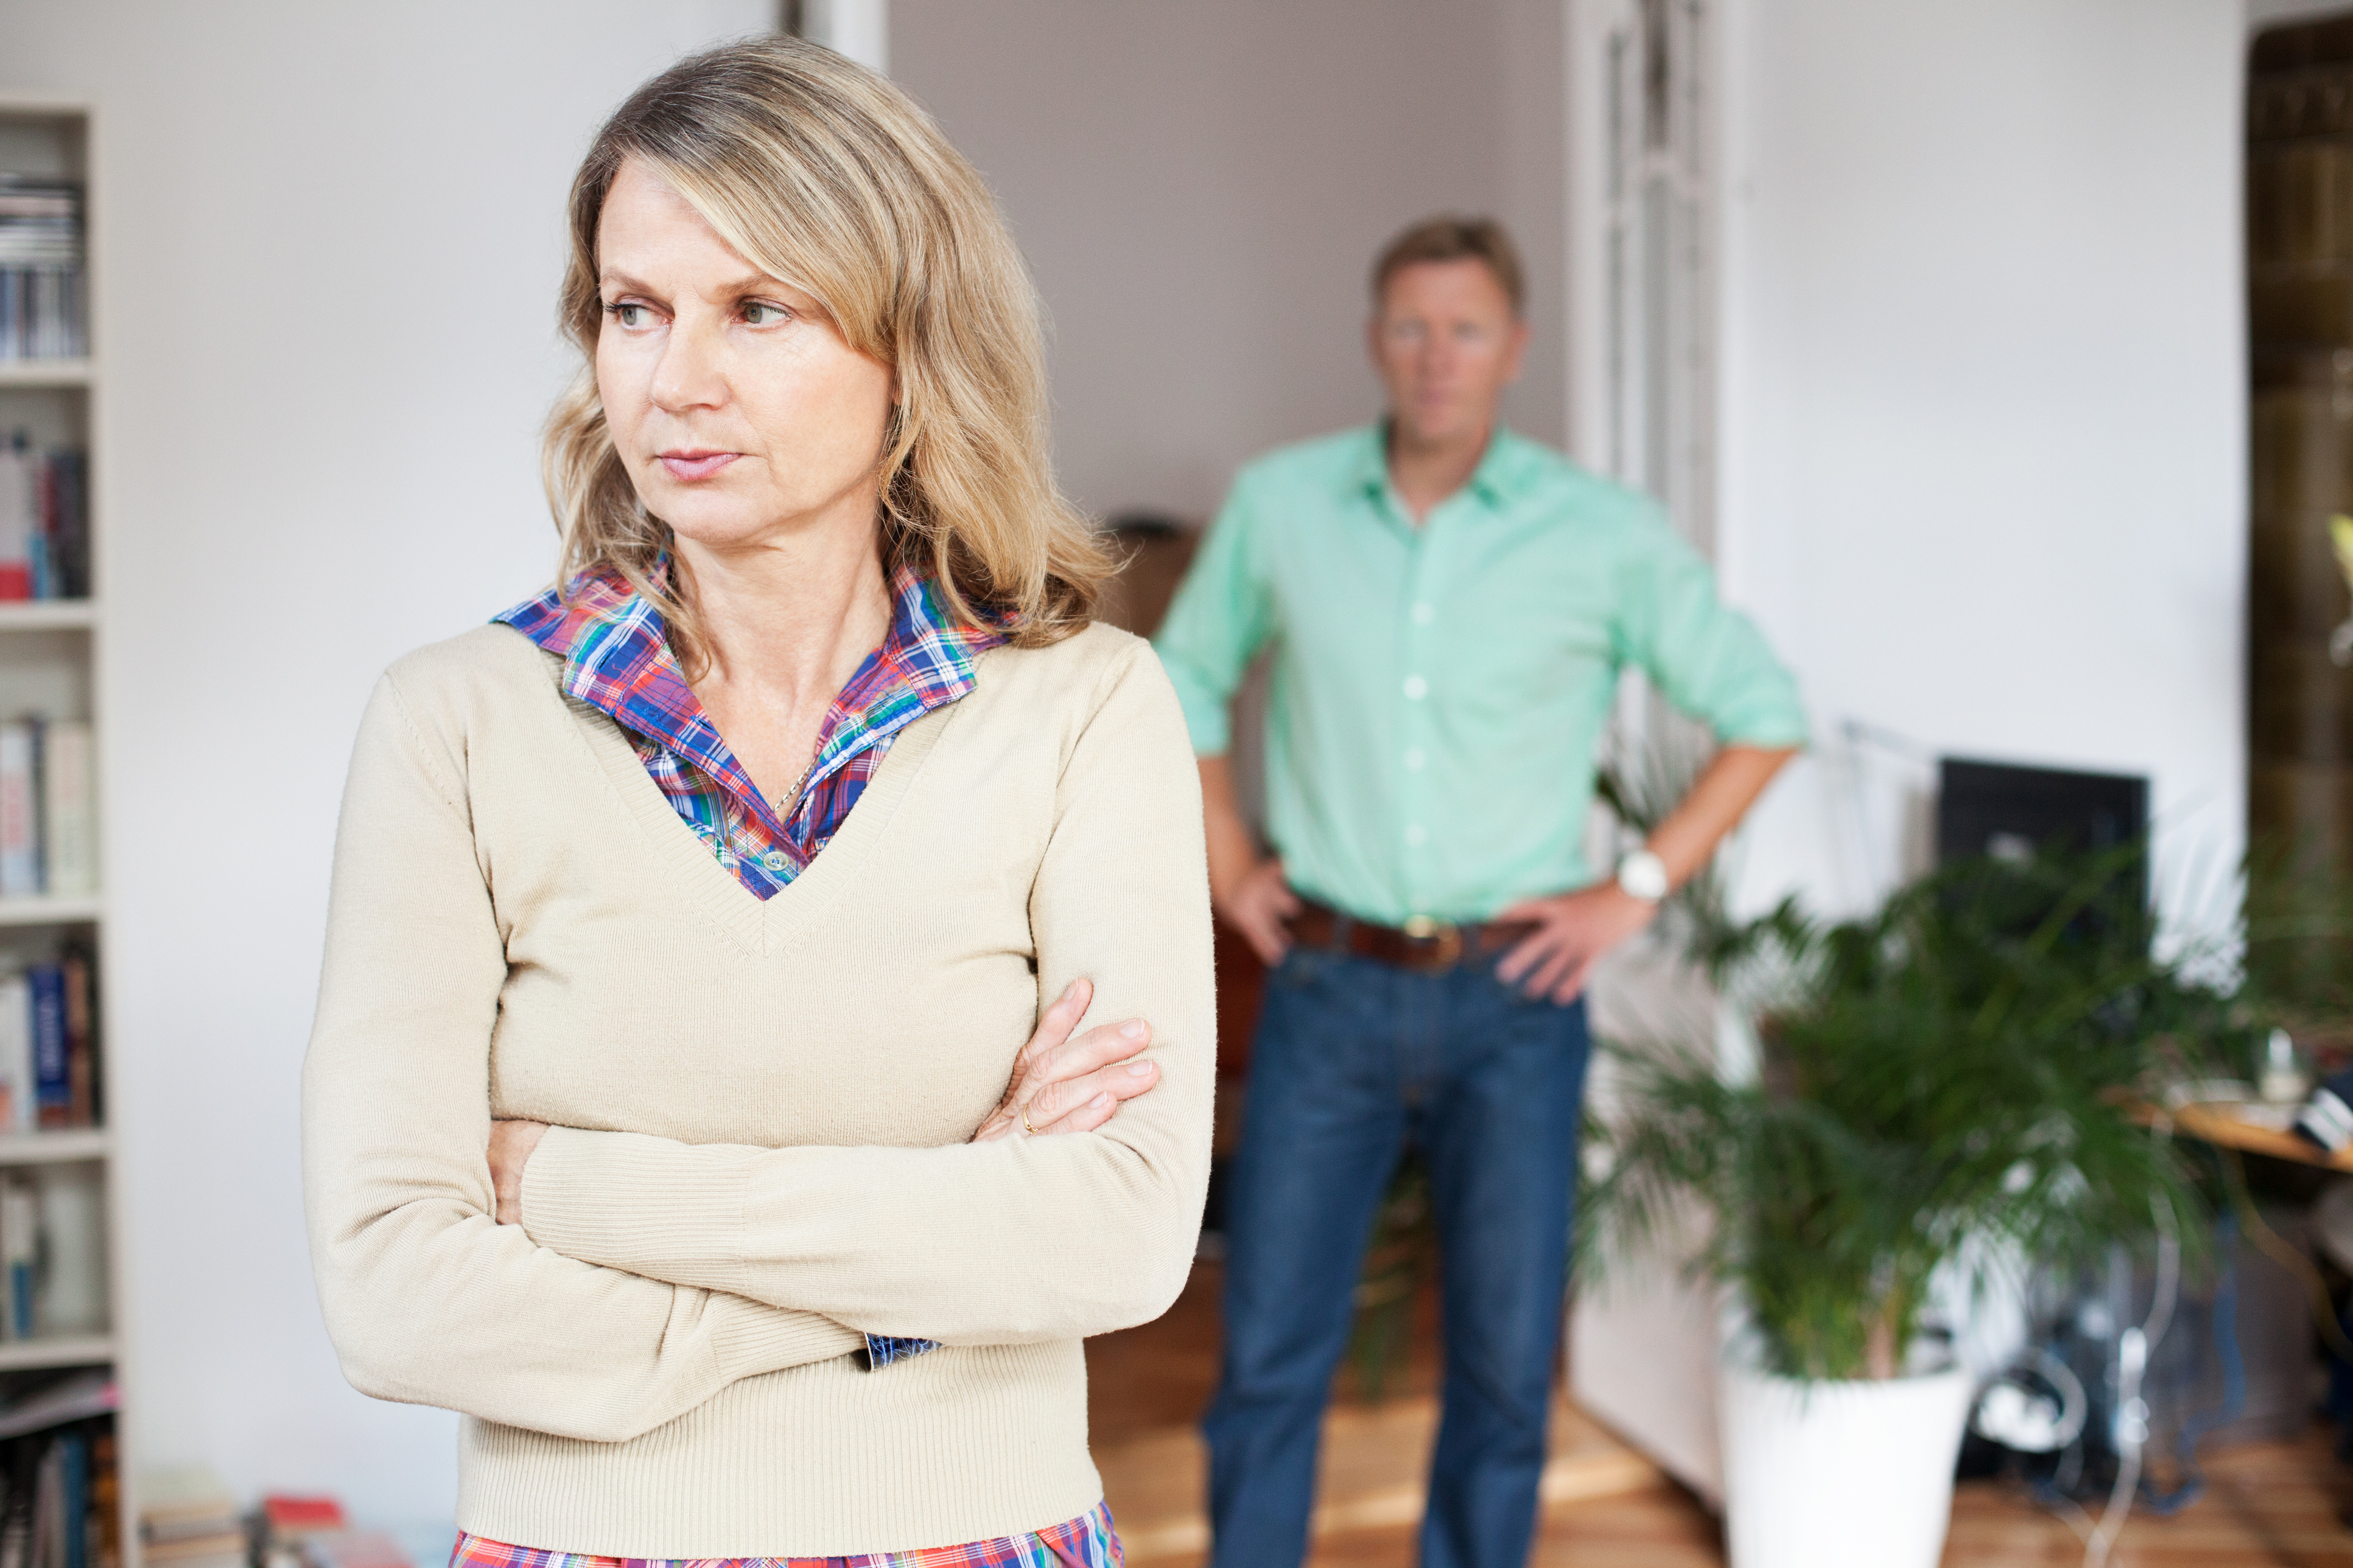 how to know when to separate from spouse